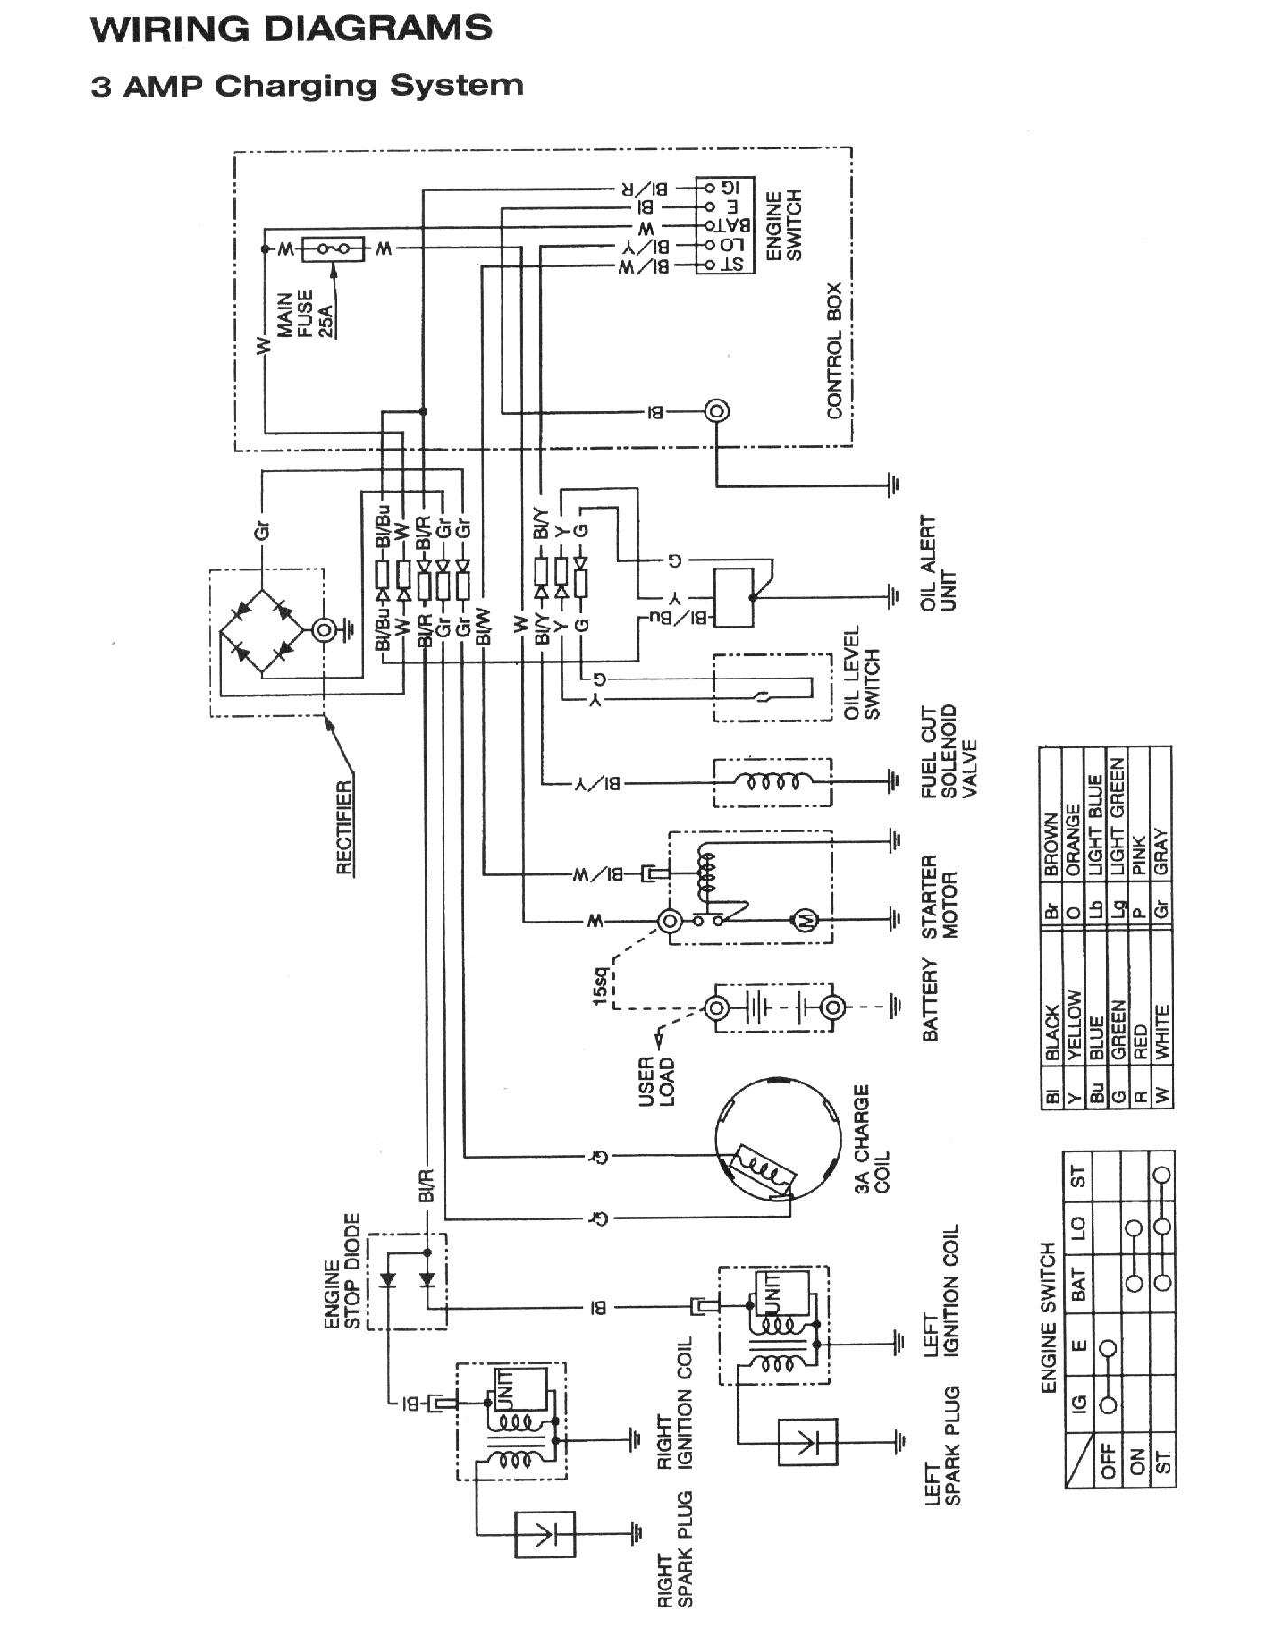 Briggs And Stratton Charging System Wiring Diagram Without